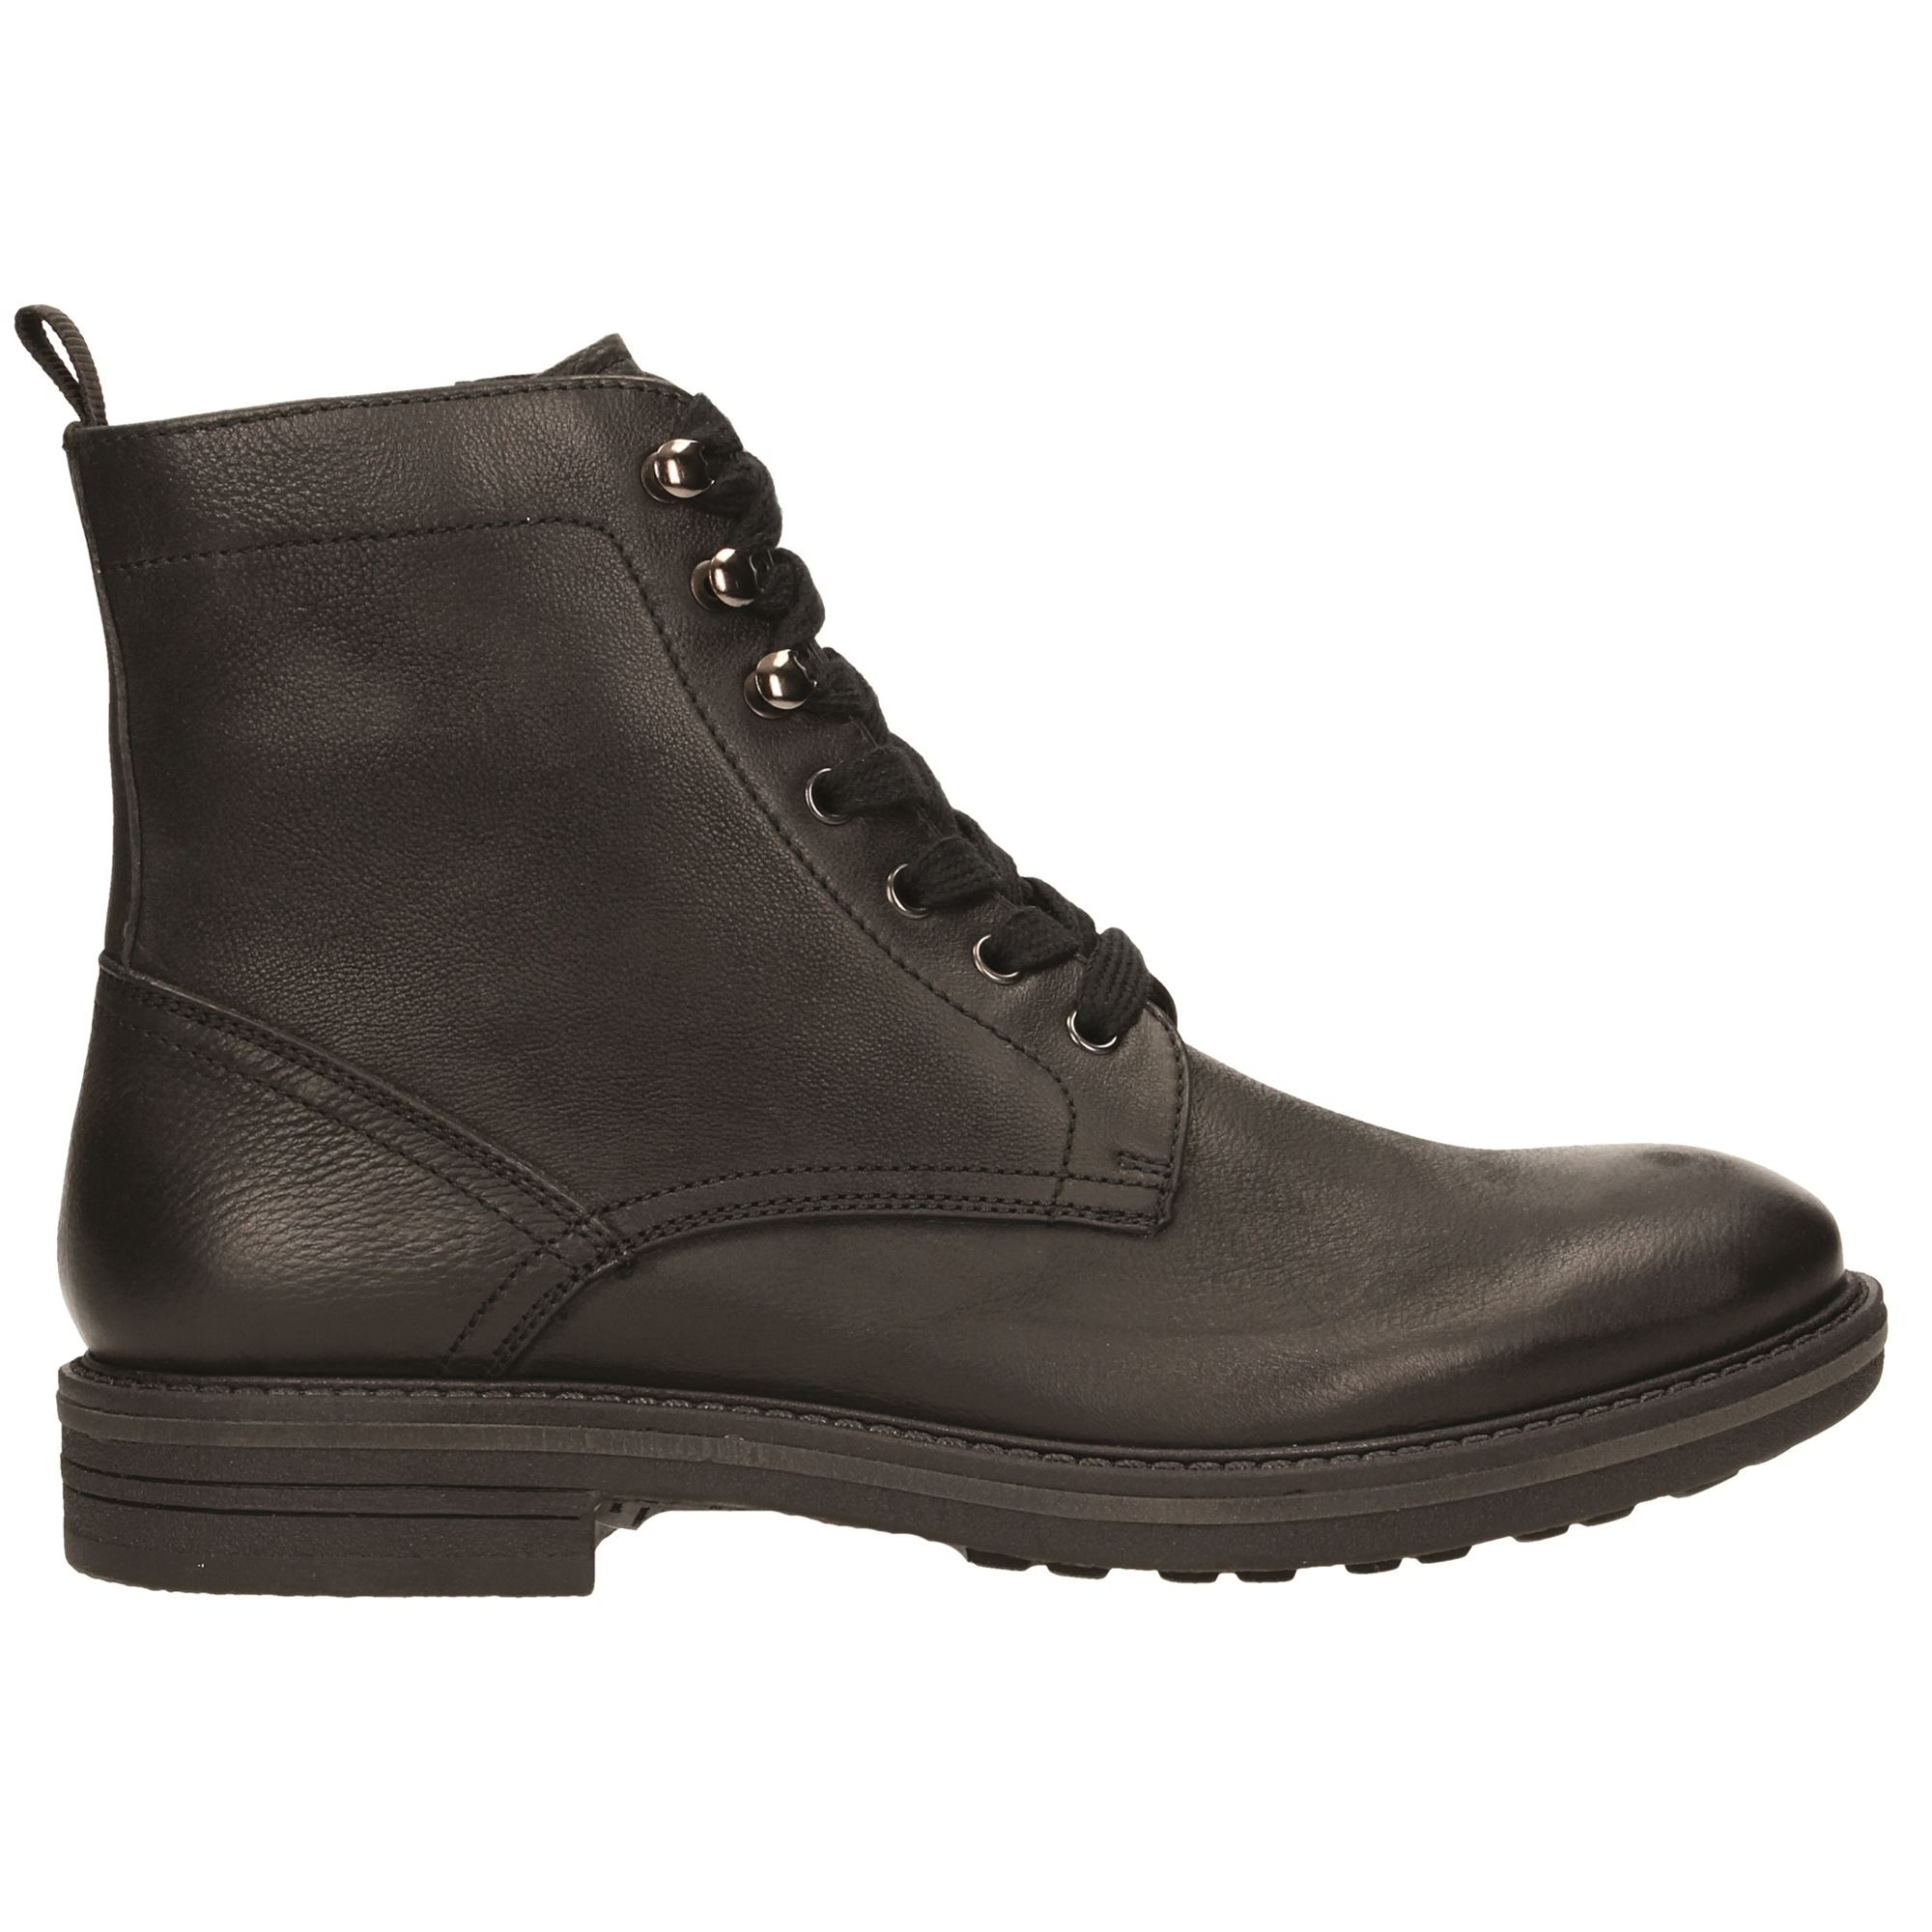 Tata Italia Shoes Man Stivaletti Black MH-348H01